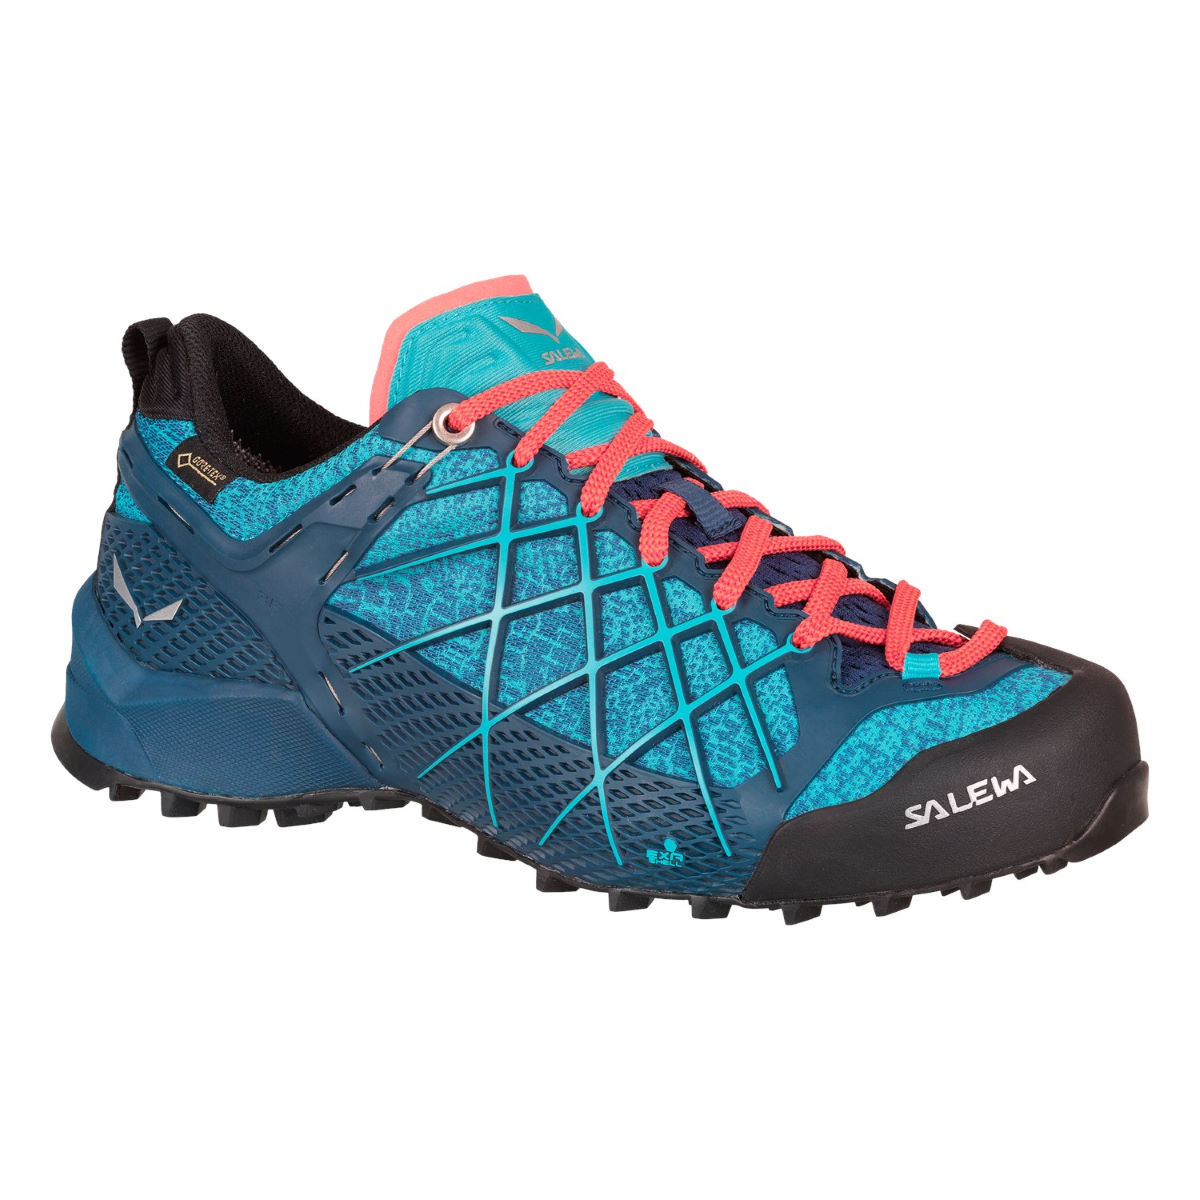 Salewa Women's Wildfire GTX Shoes - Zapatillas